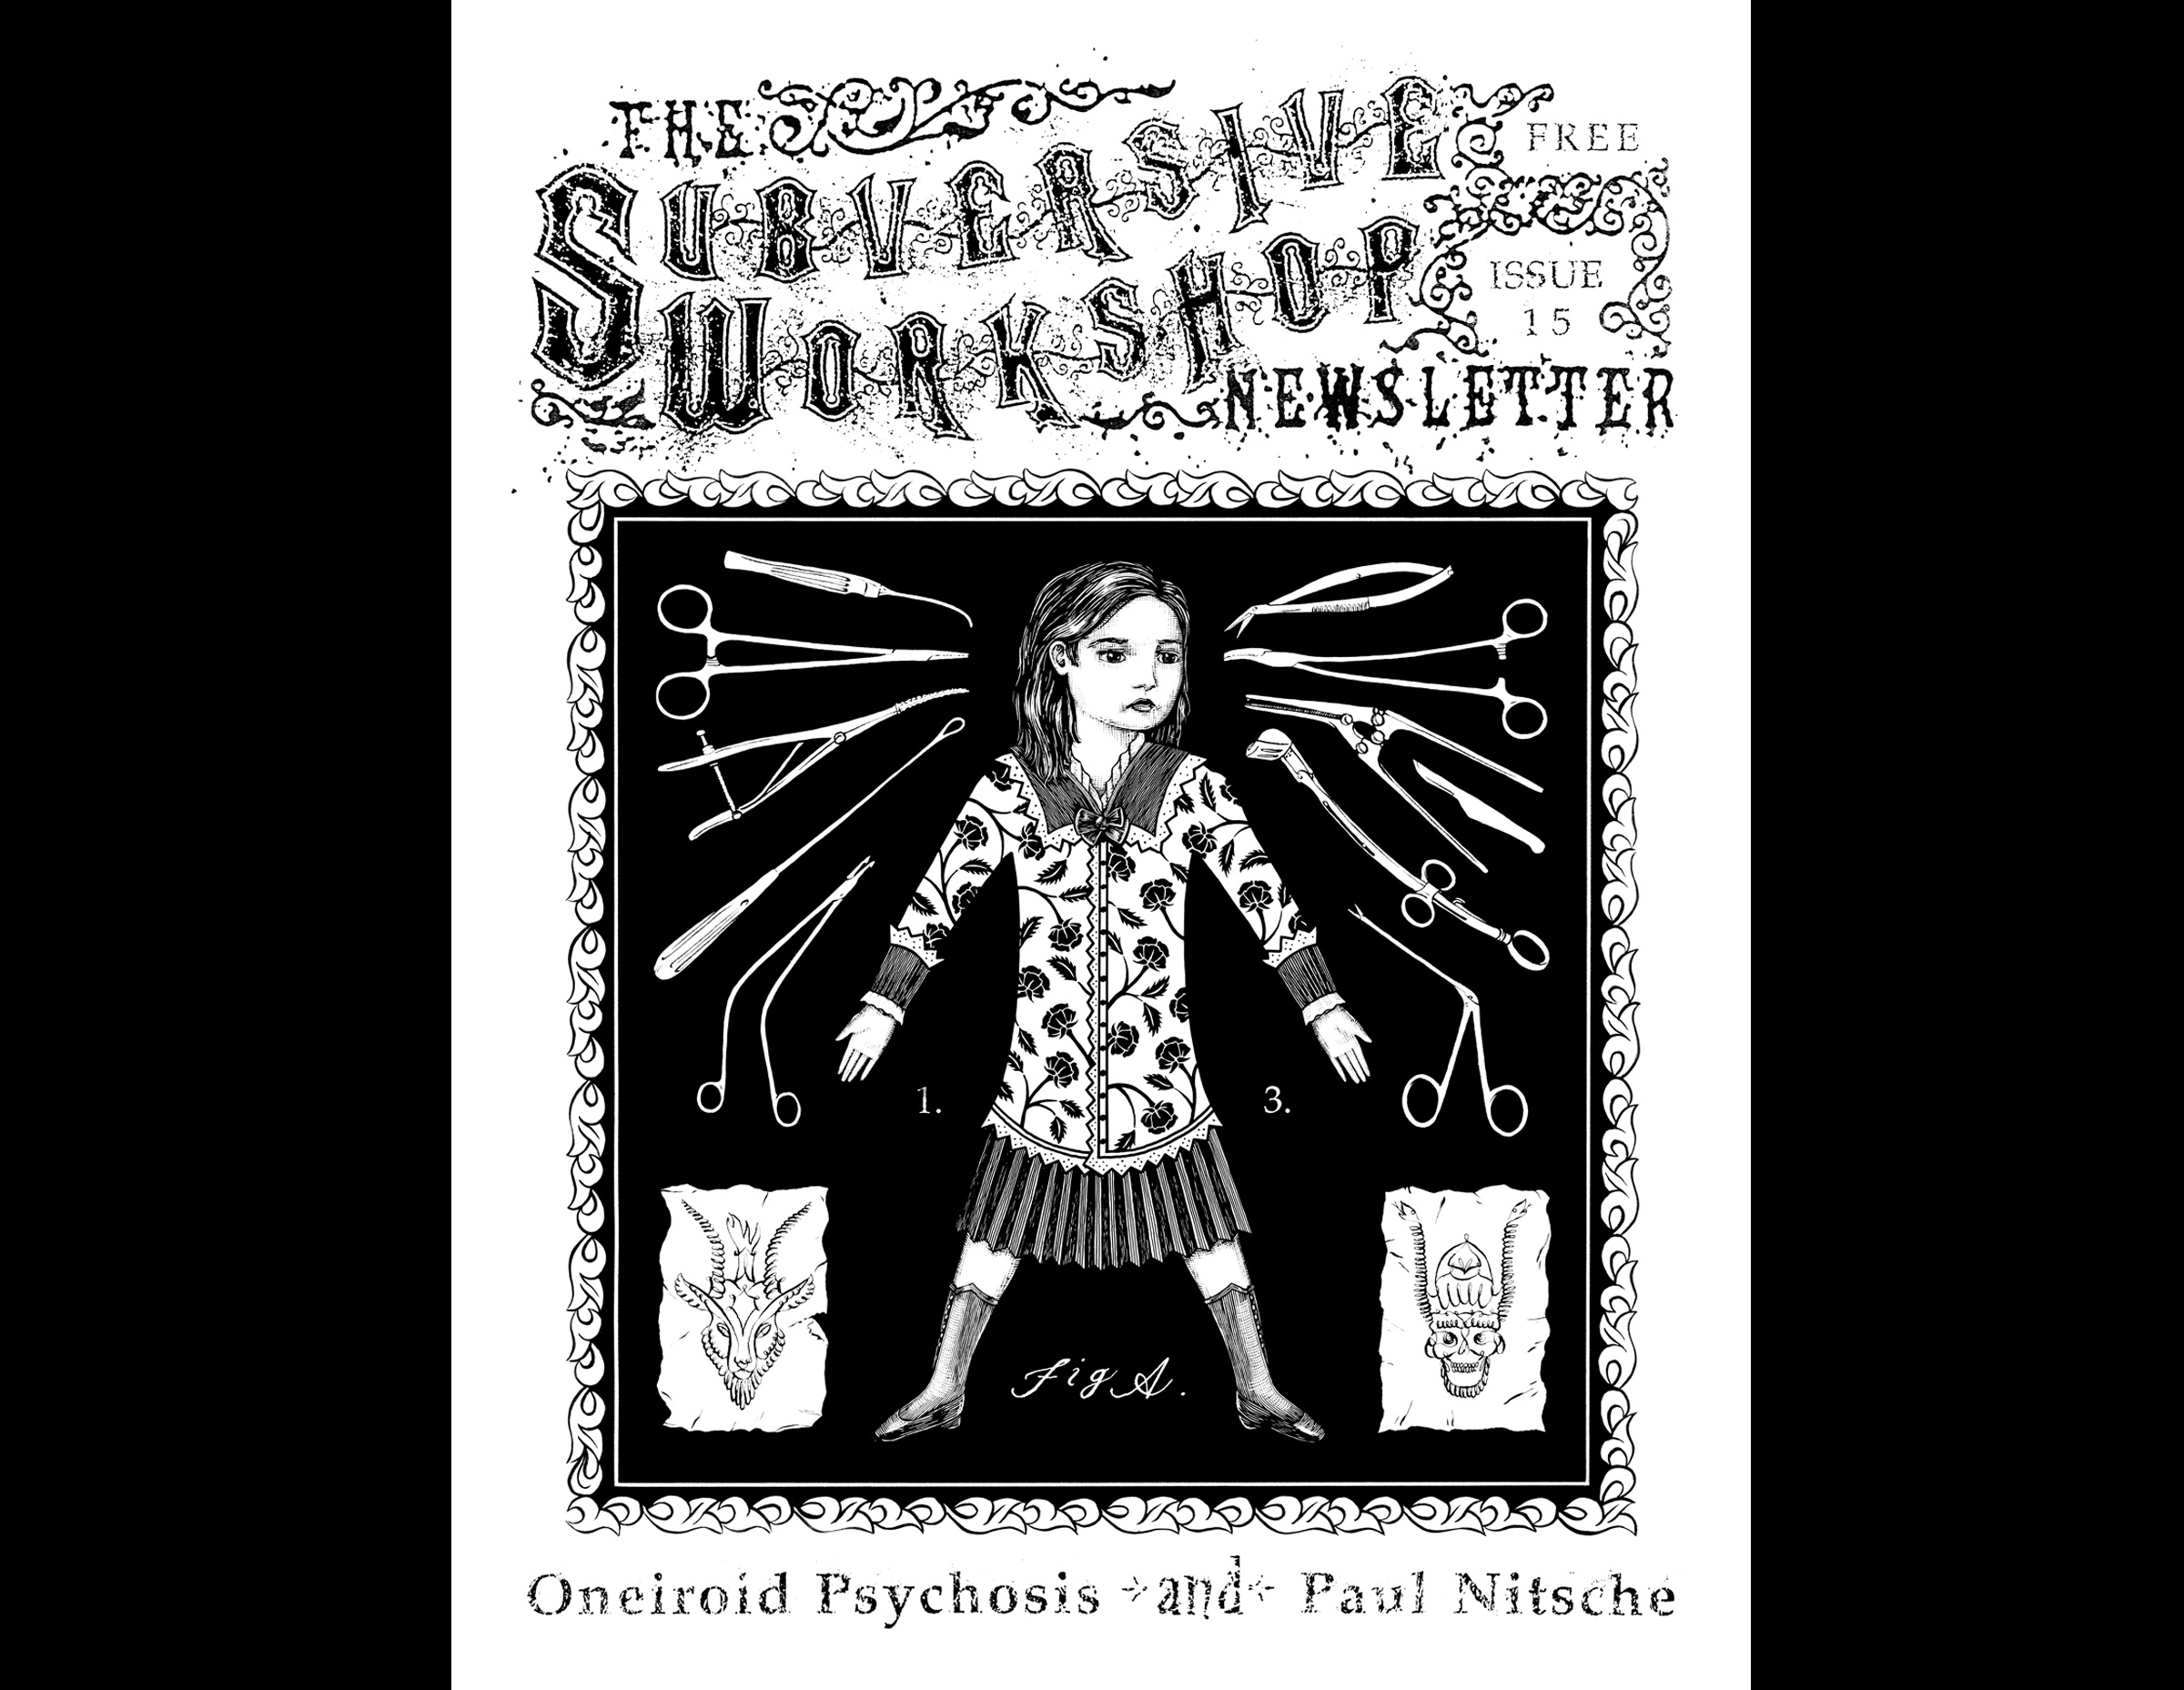 The Subversive Workshop Newsletter, Issue 15, cover.  1995. Pen and Ink, Scratch board. Published by Jeff McLeod.